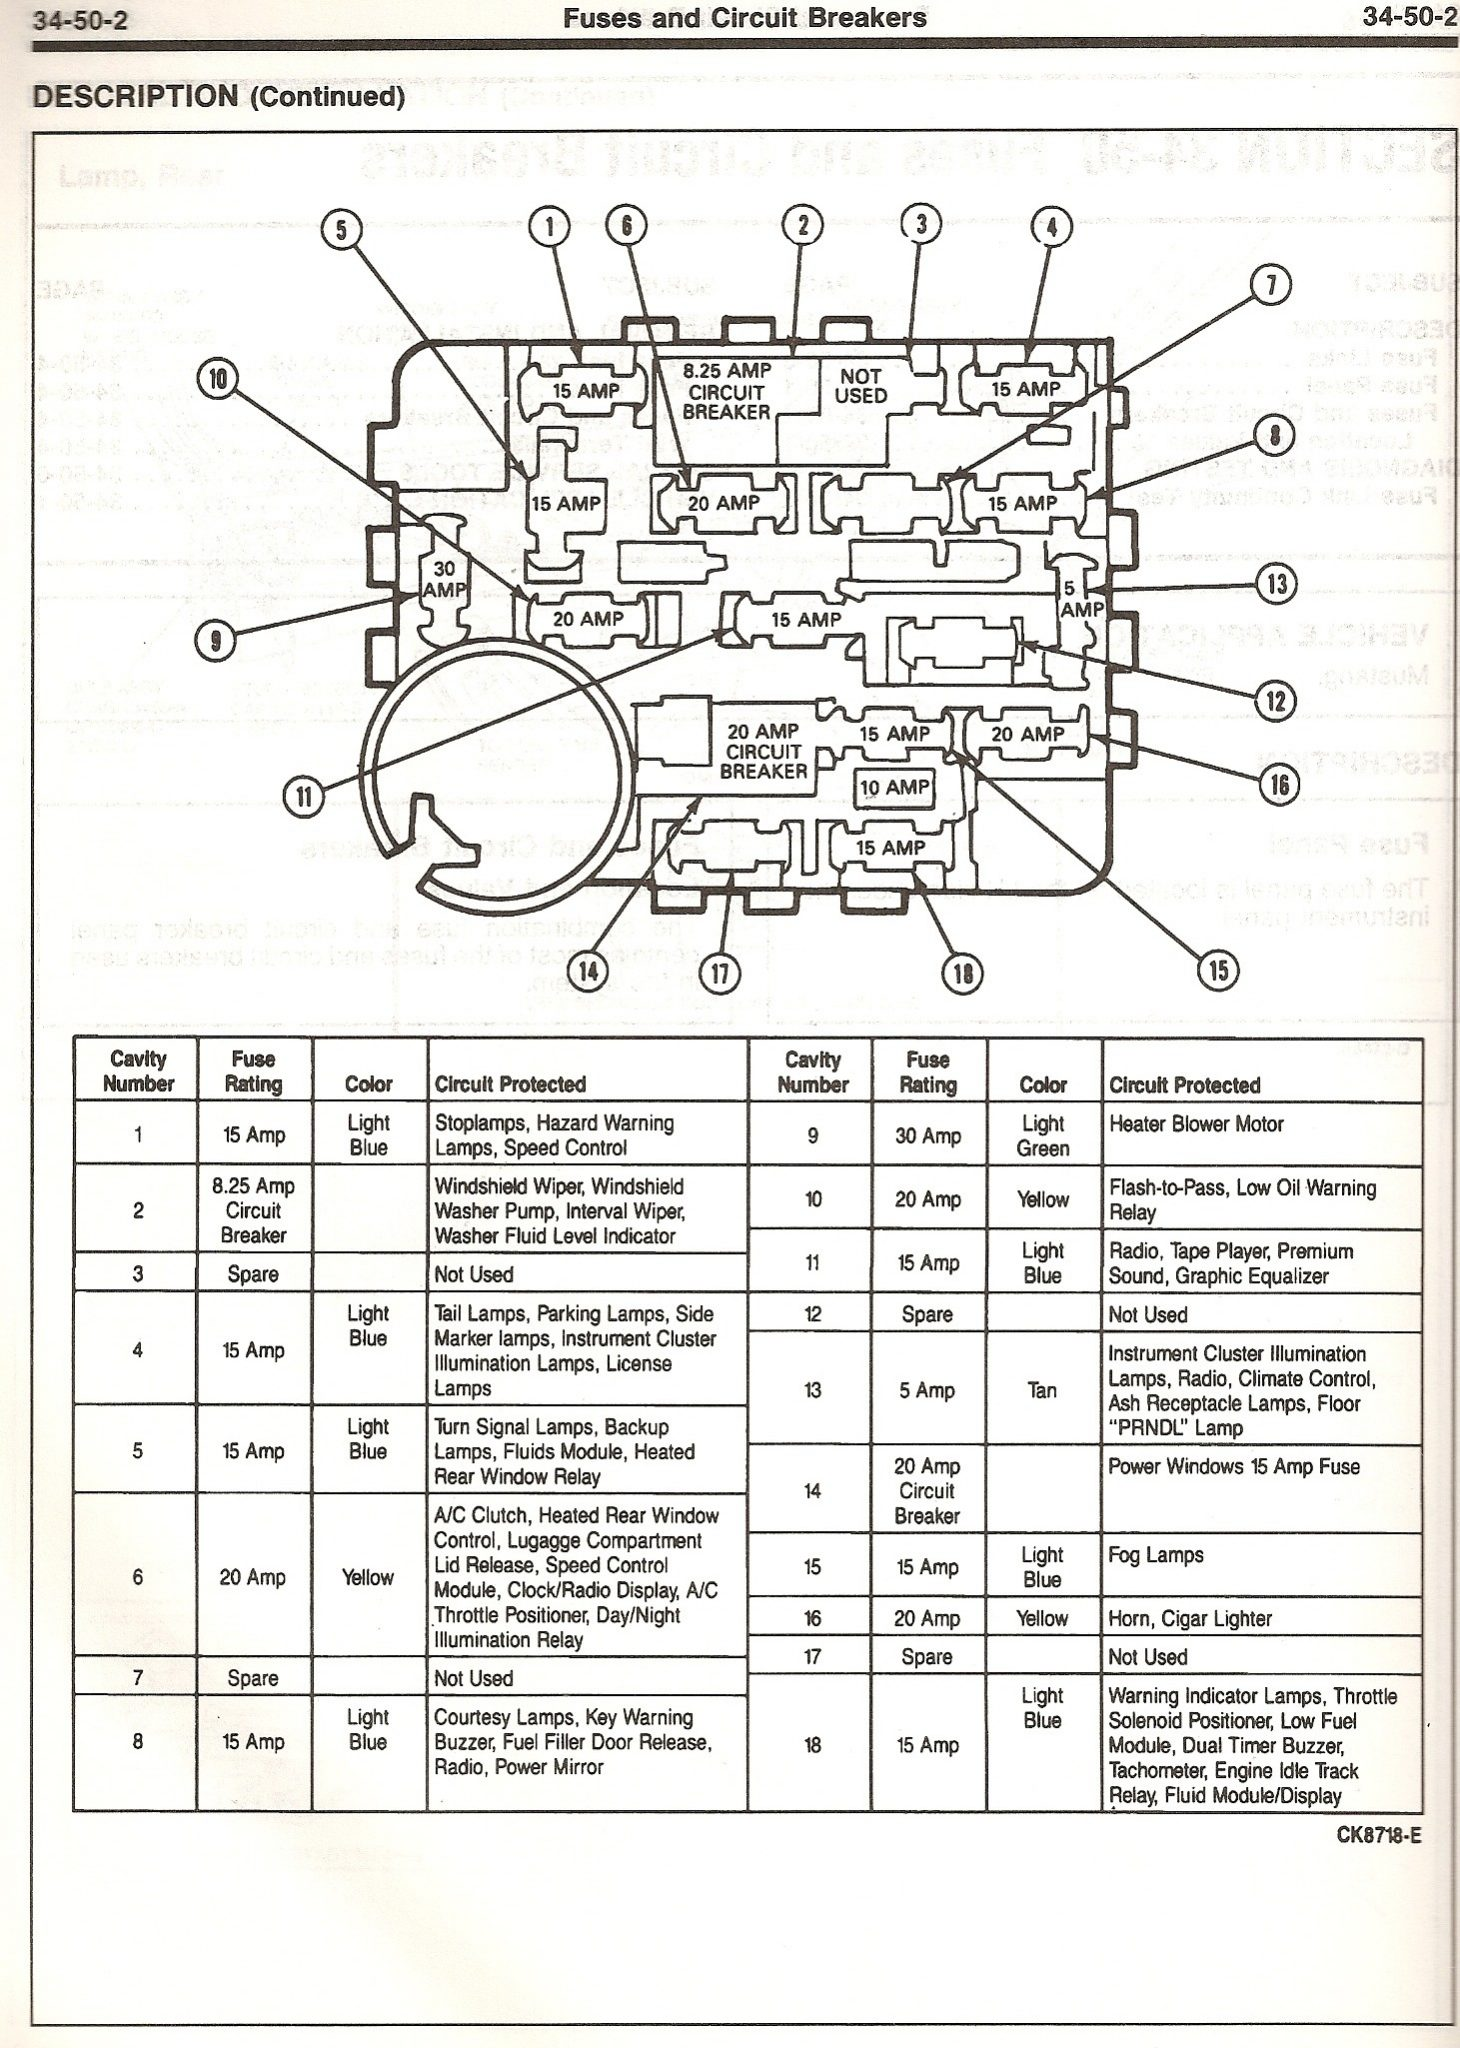 1997 Oldsmobile Achieva Fuse Box Diagram Wiring Library Bravada 1991 Ford Thunderbird Under Hood Wire Center U2022 Expedition